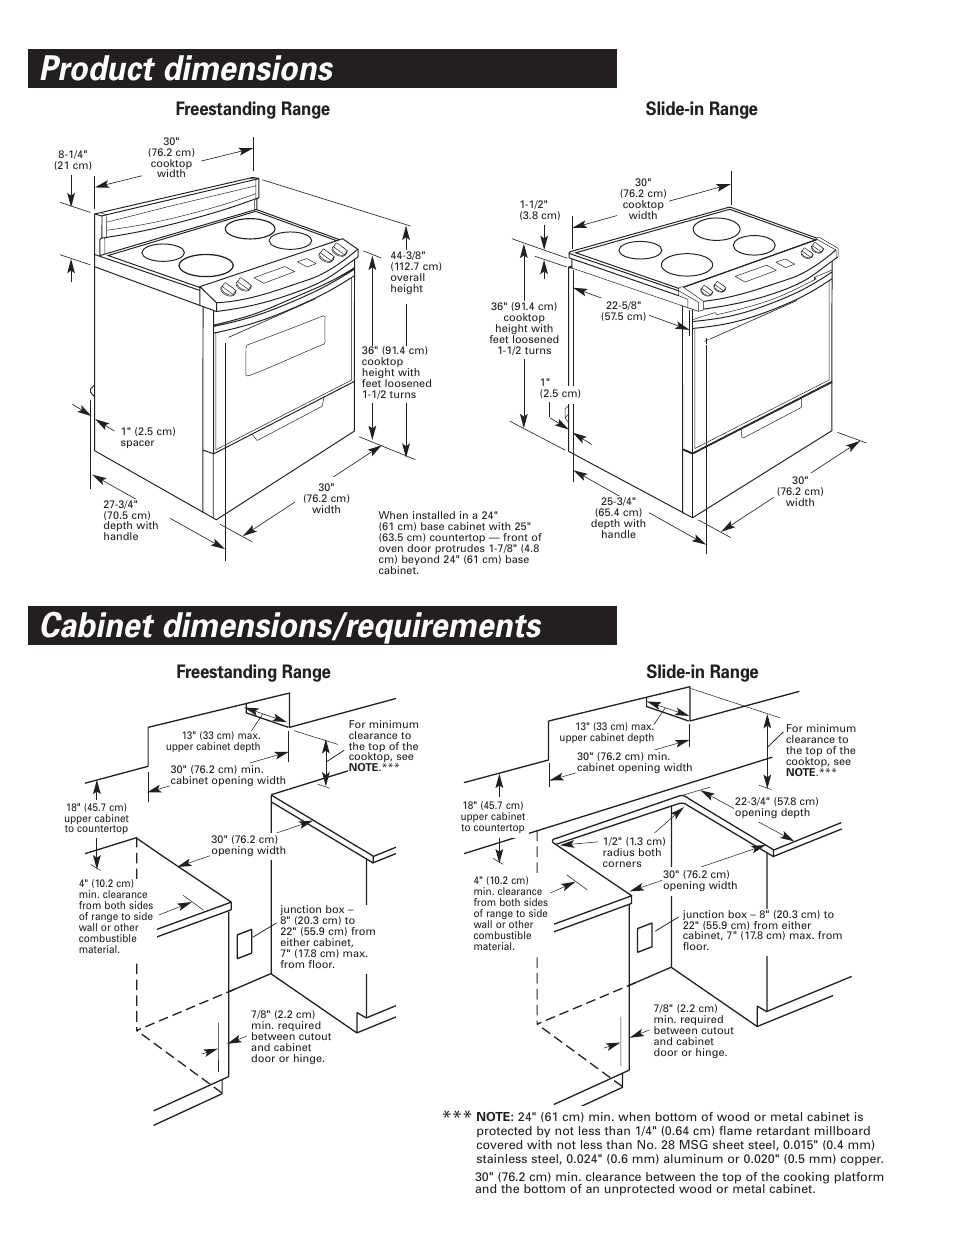 Product dimensions, Cabinet dimensions/requirements